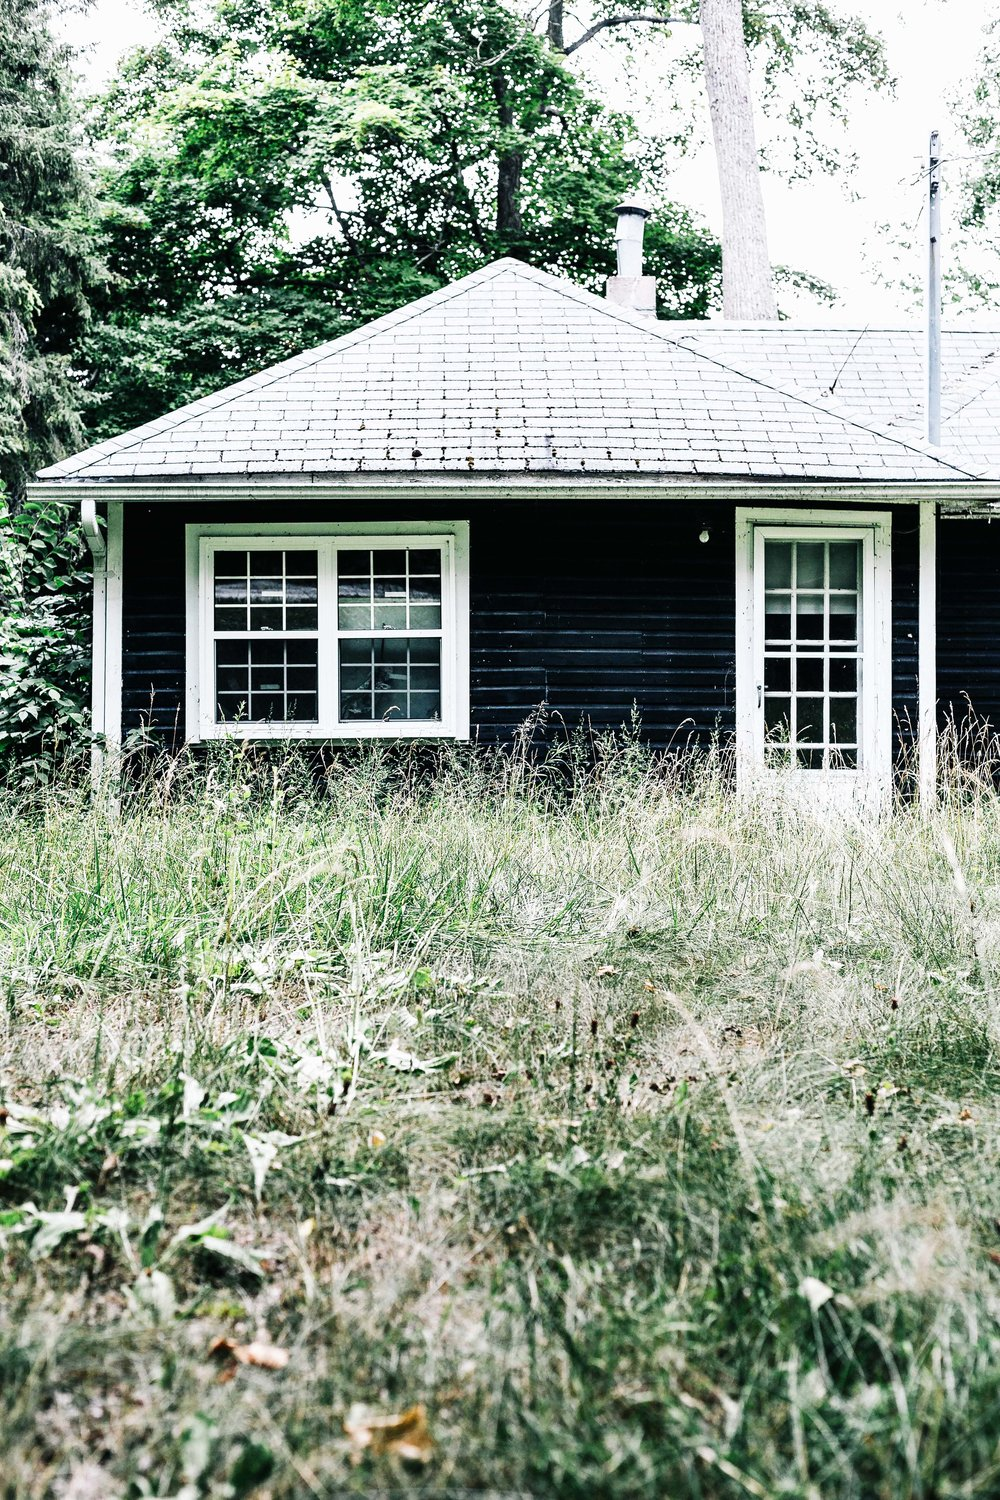 Oh_The_Potintial_Cottage-1 copy.jpg